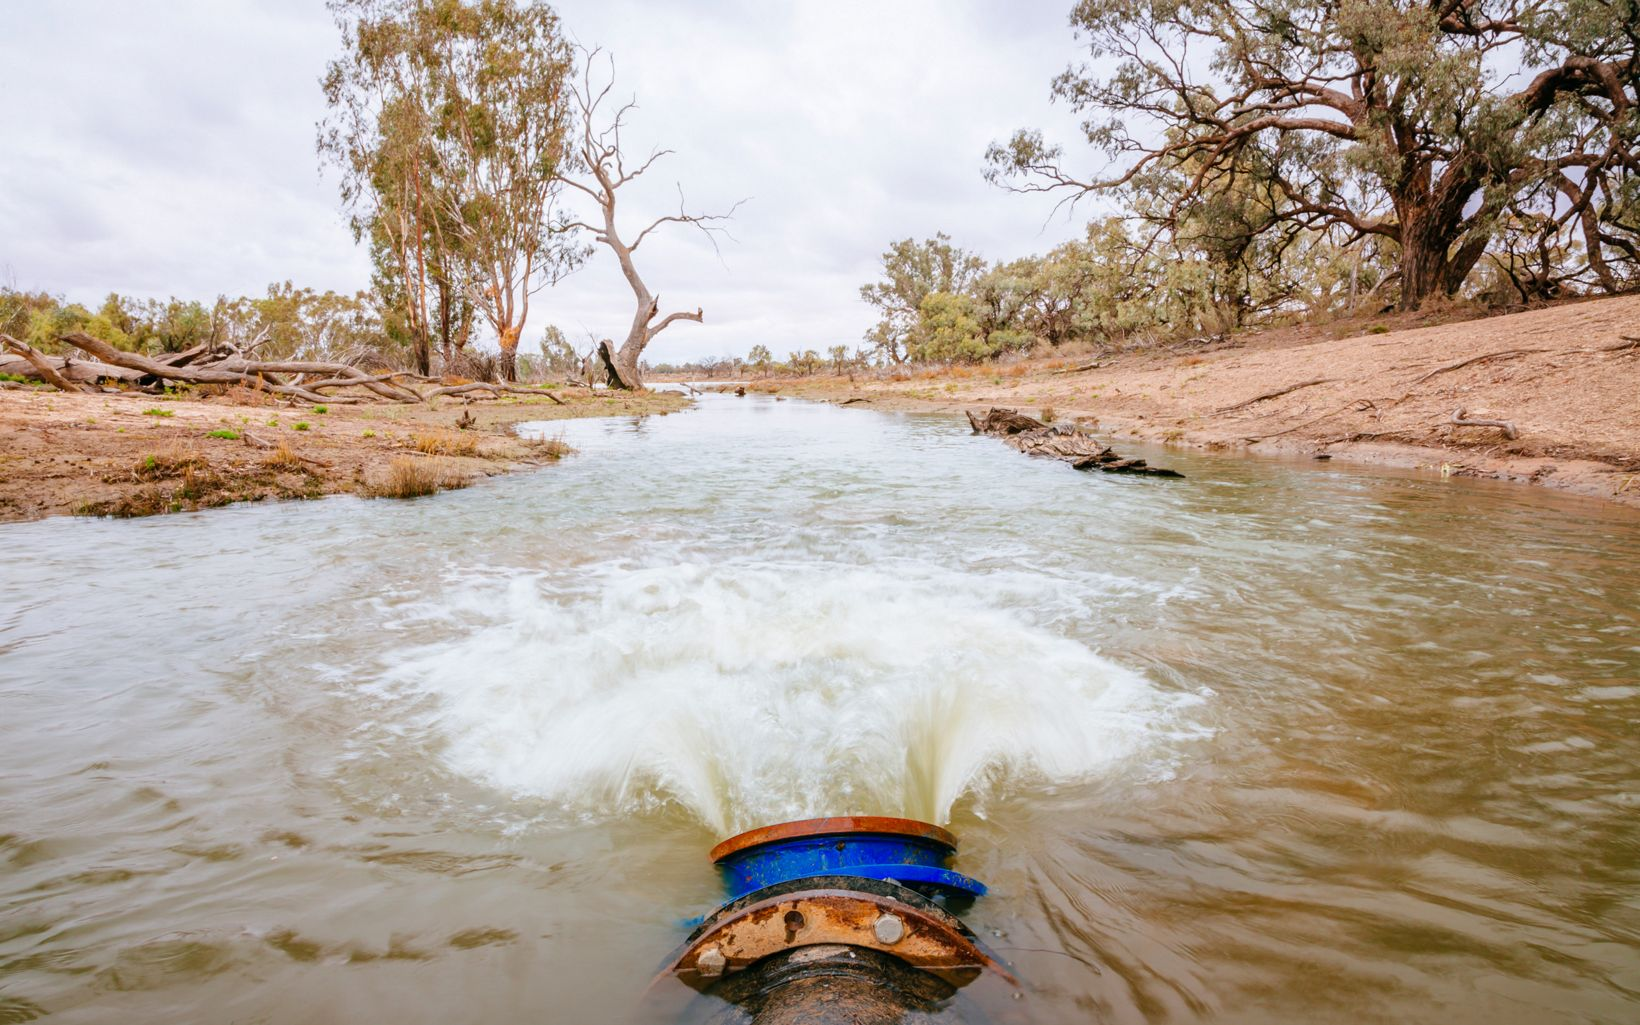 as part of the Murray-Darling Basin Balanced Water Fund.